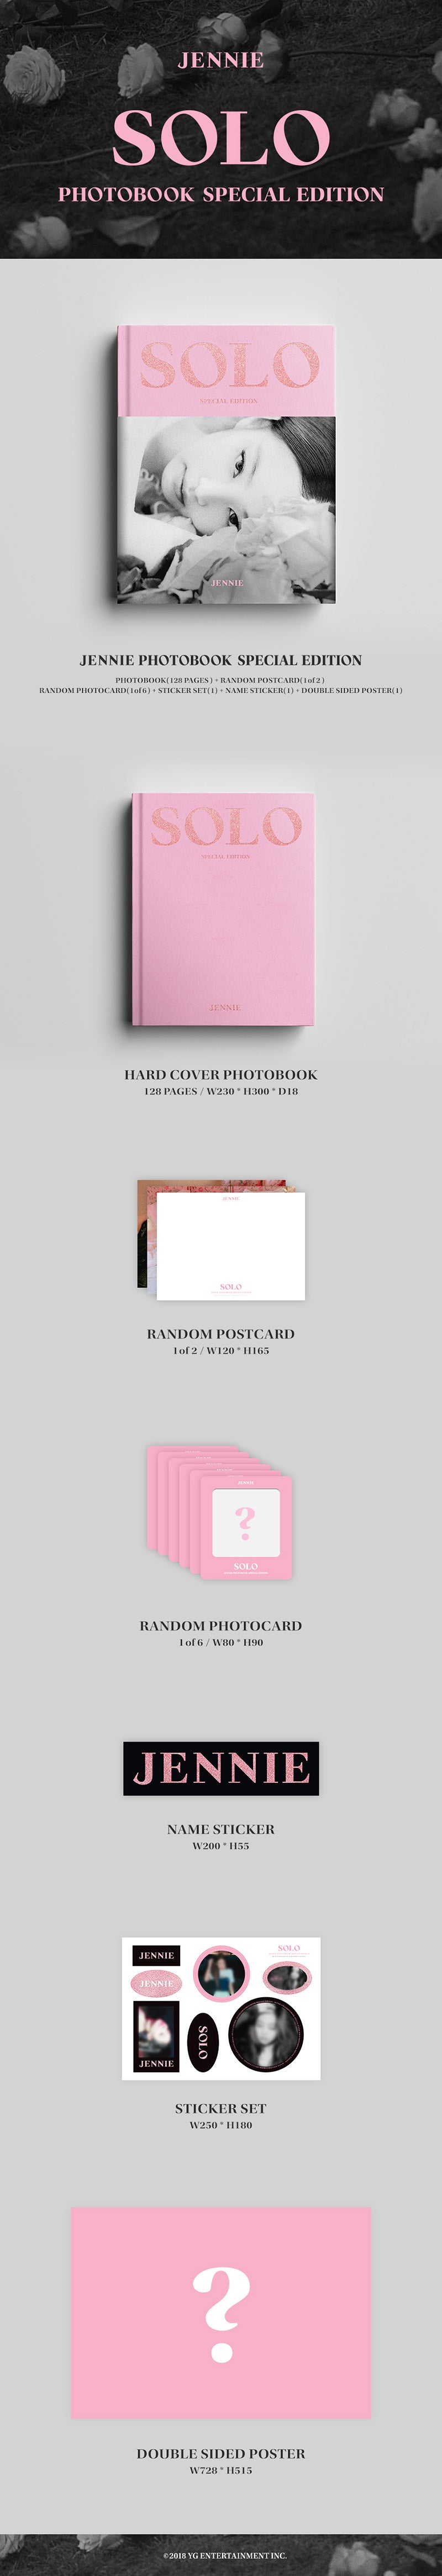 JENNIE SOLO SPECIAL EDITION PHOTOBOOK Infographic